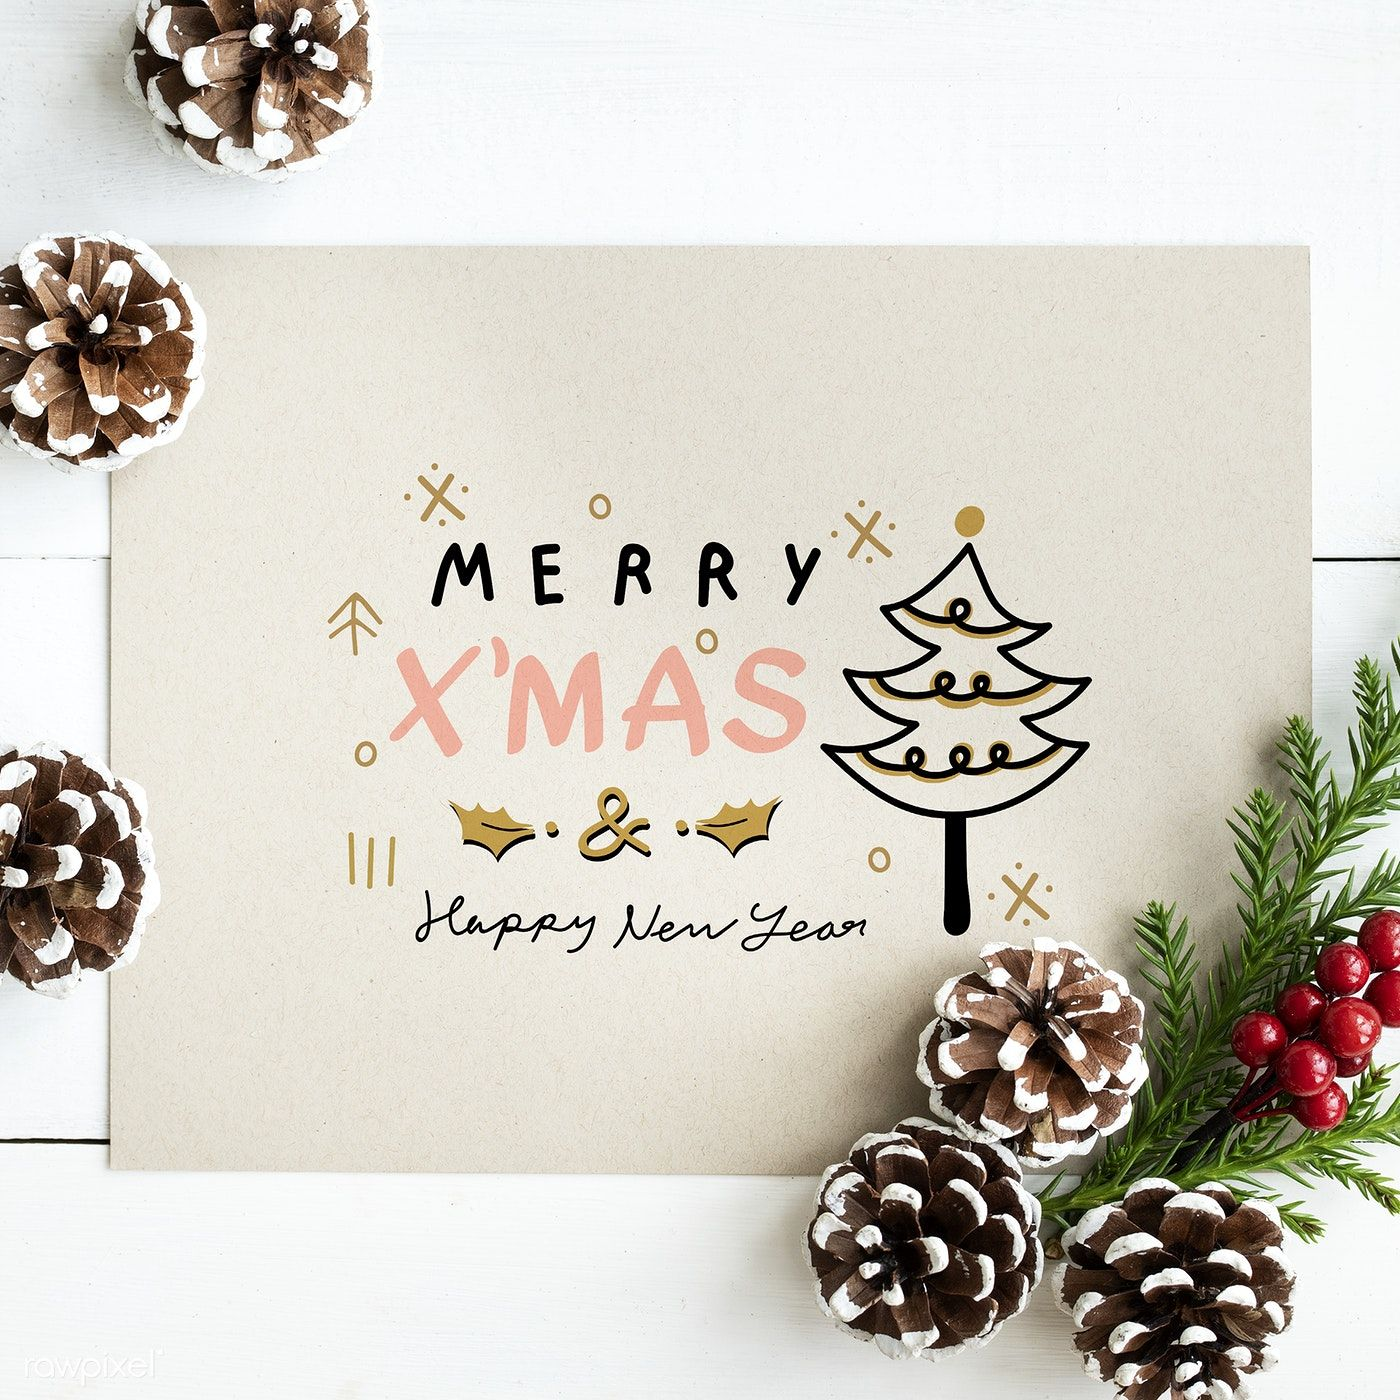 Download Premium Psd Of Merry X Mas And Happy New Year Card Mockup Merry Christmas Card Greetings Happy New Year Cards Free Christmas Greeting Cards